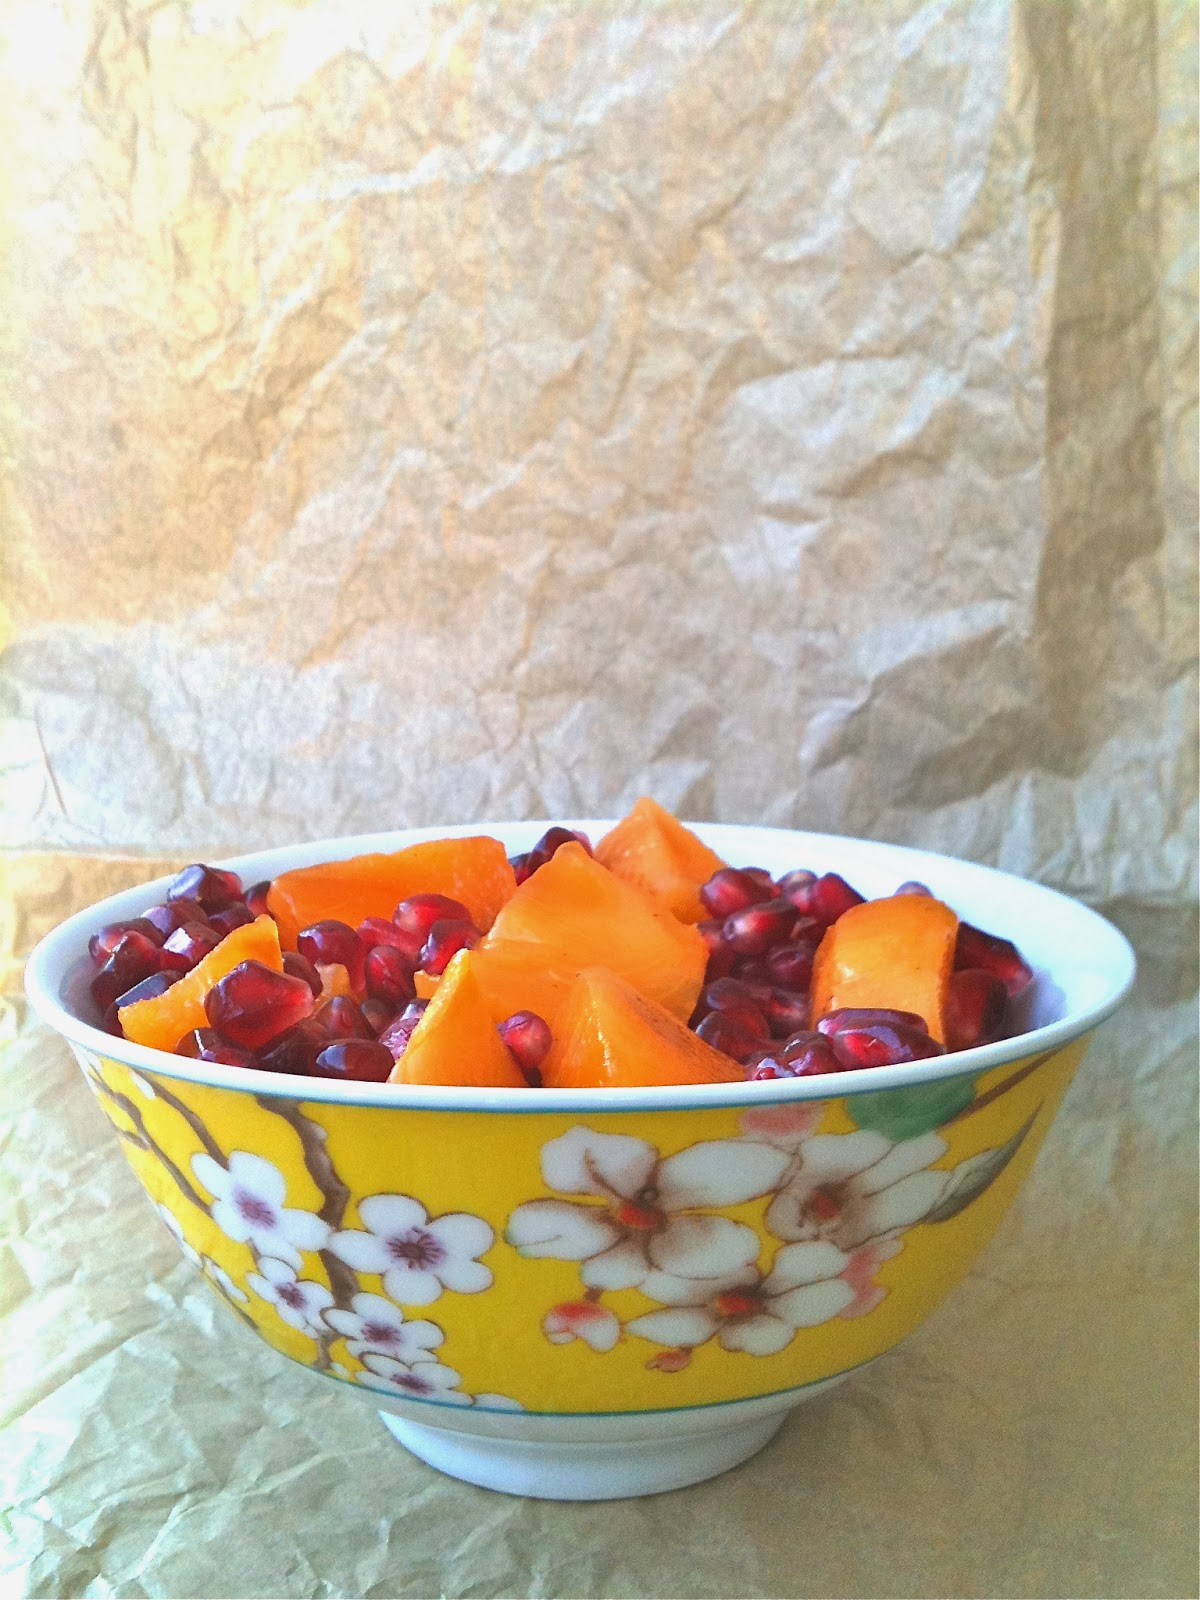 Passionately Raw! - Persimmon and Pomegranate Salad